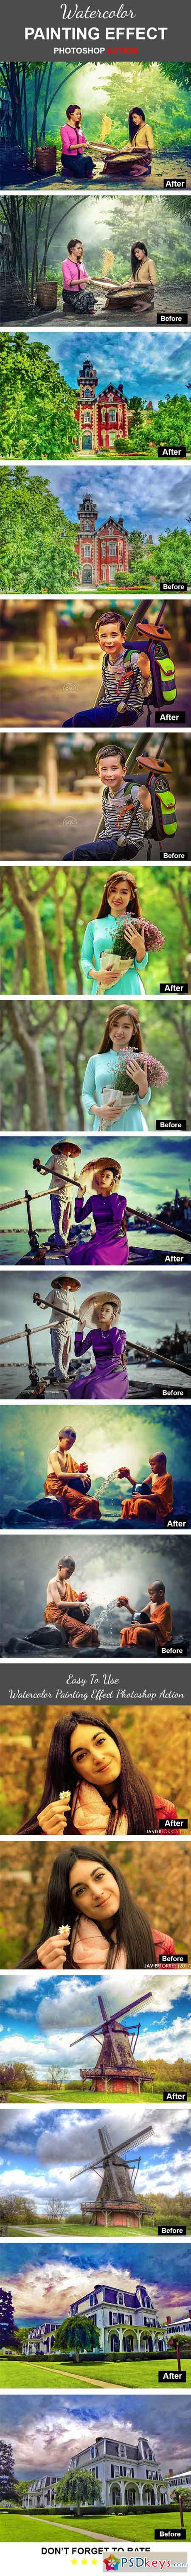 Watercolor Painting Effect Photoshop Action 22485805